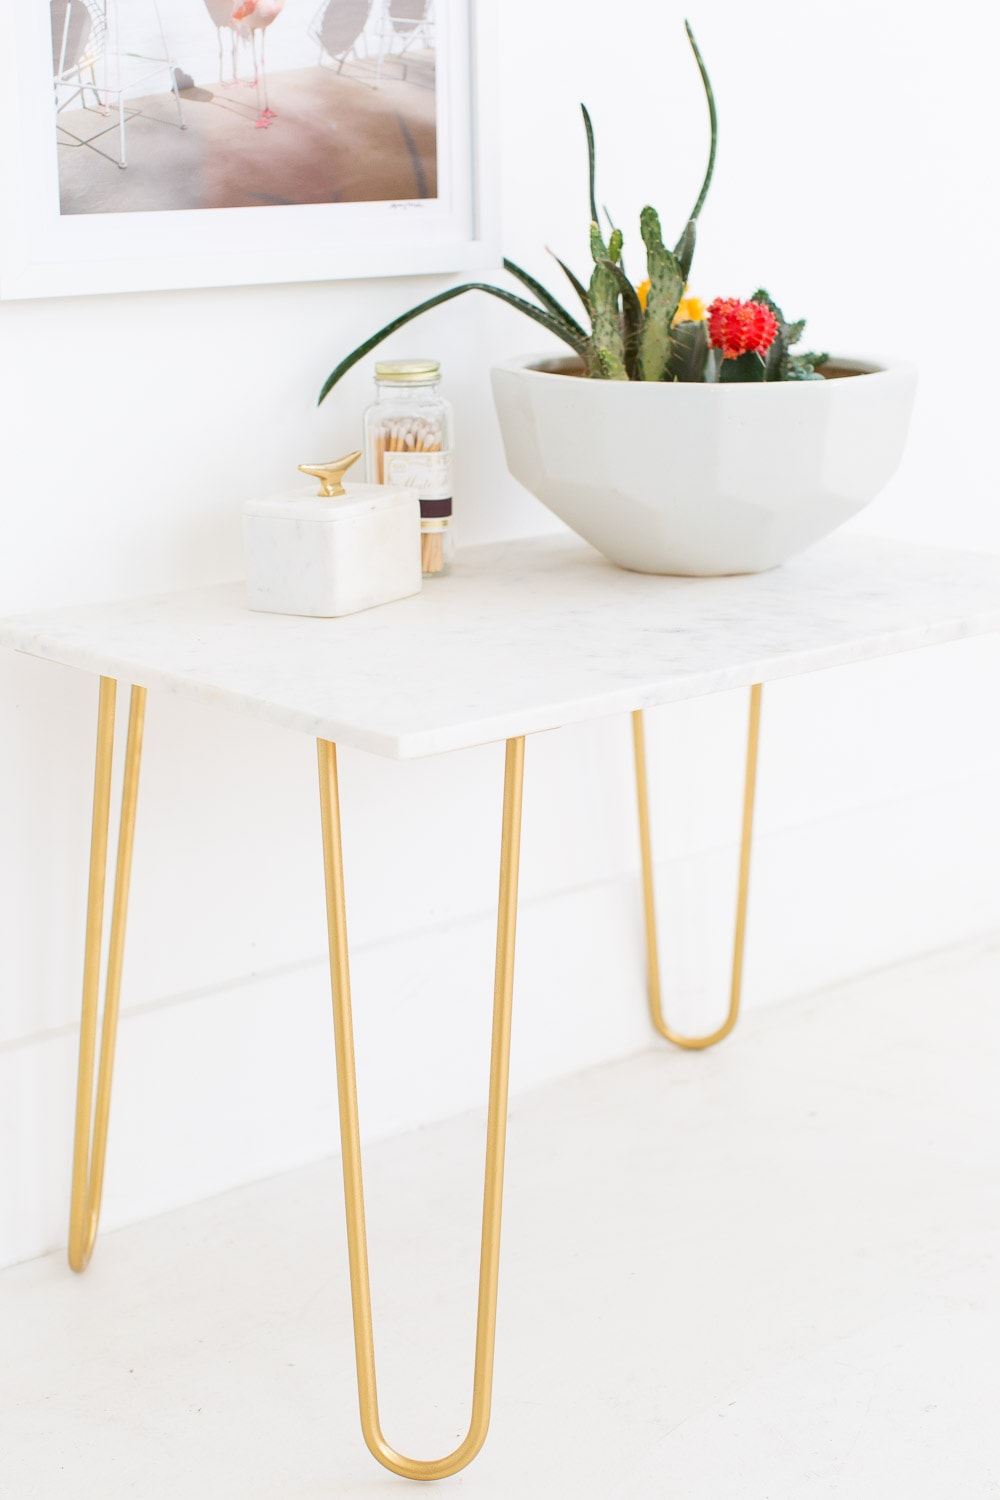 Diy Marble Table Top With Gold Accents Sugar Cloth